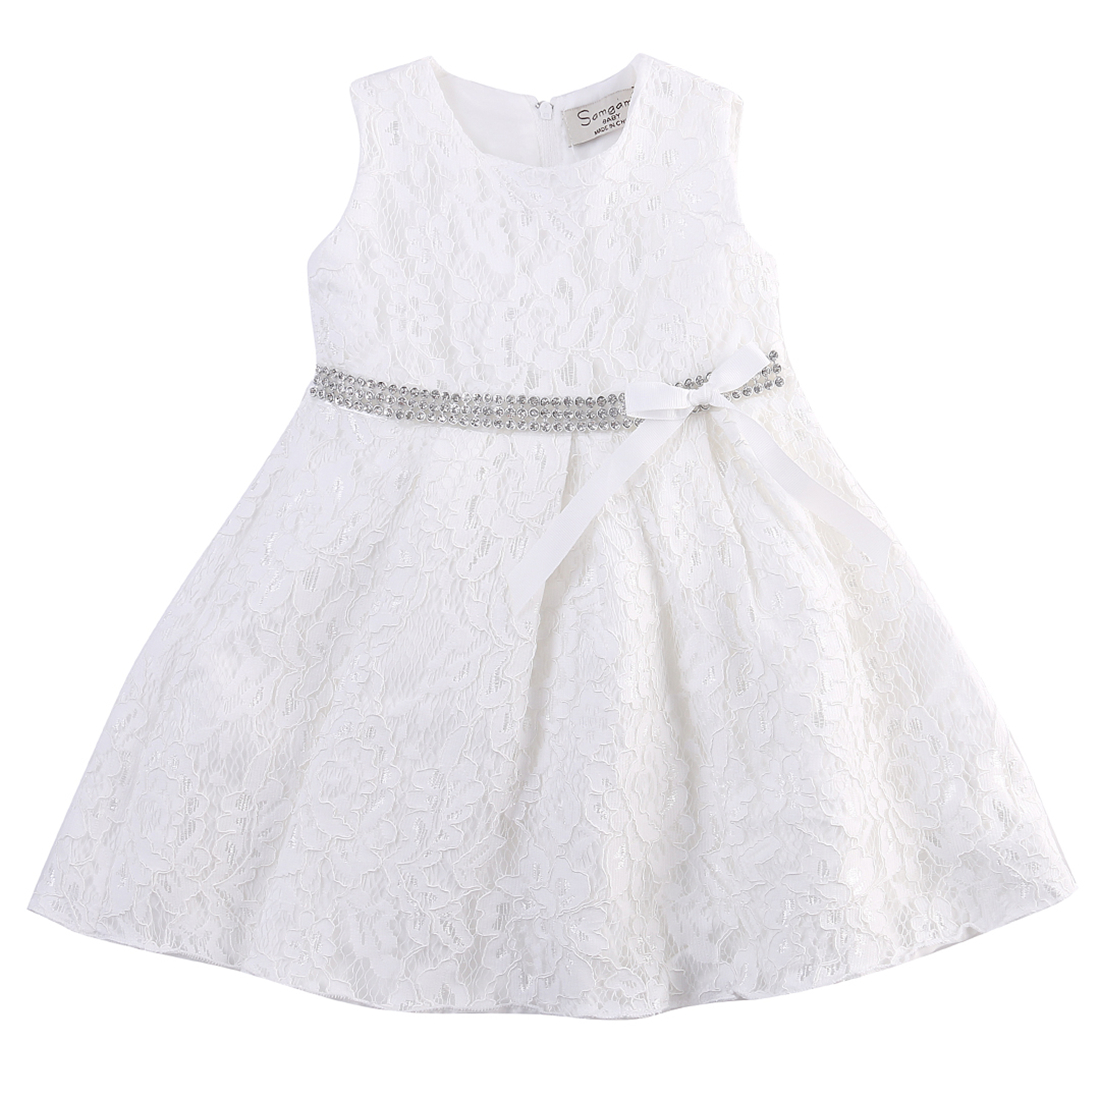 Princess Dress For Girls Clothing Flower Girls Dresses For Party and Wedding Costume Children Communion Gown Tutu Kids Clothes in Dresses from Mother Kids